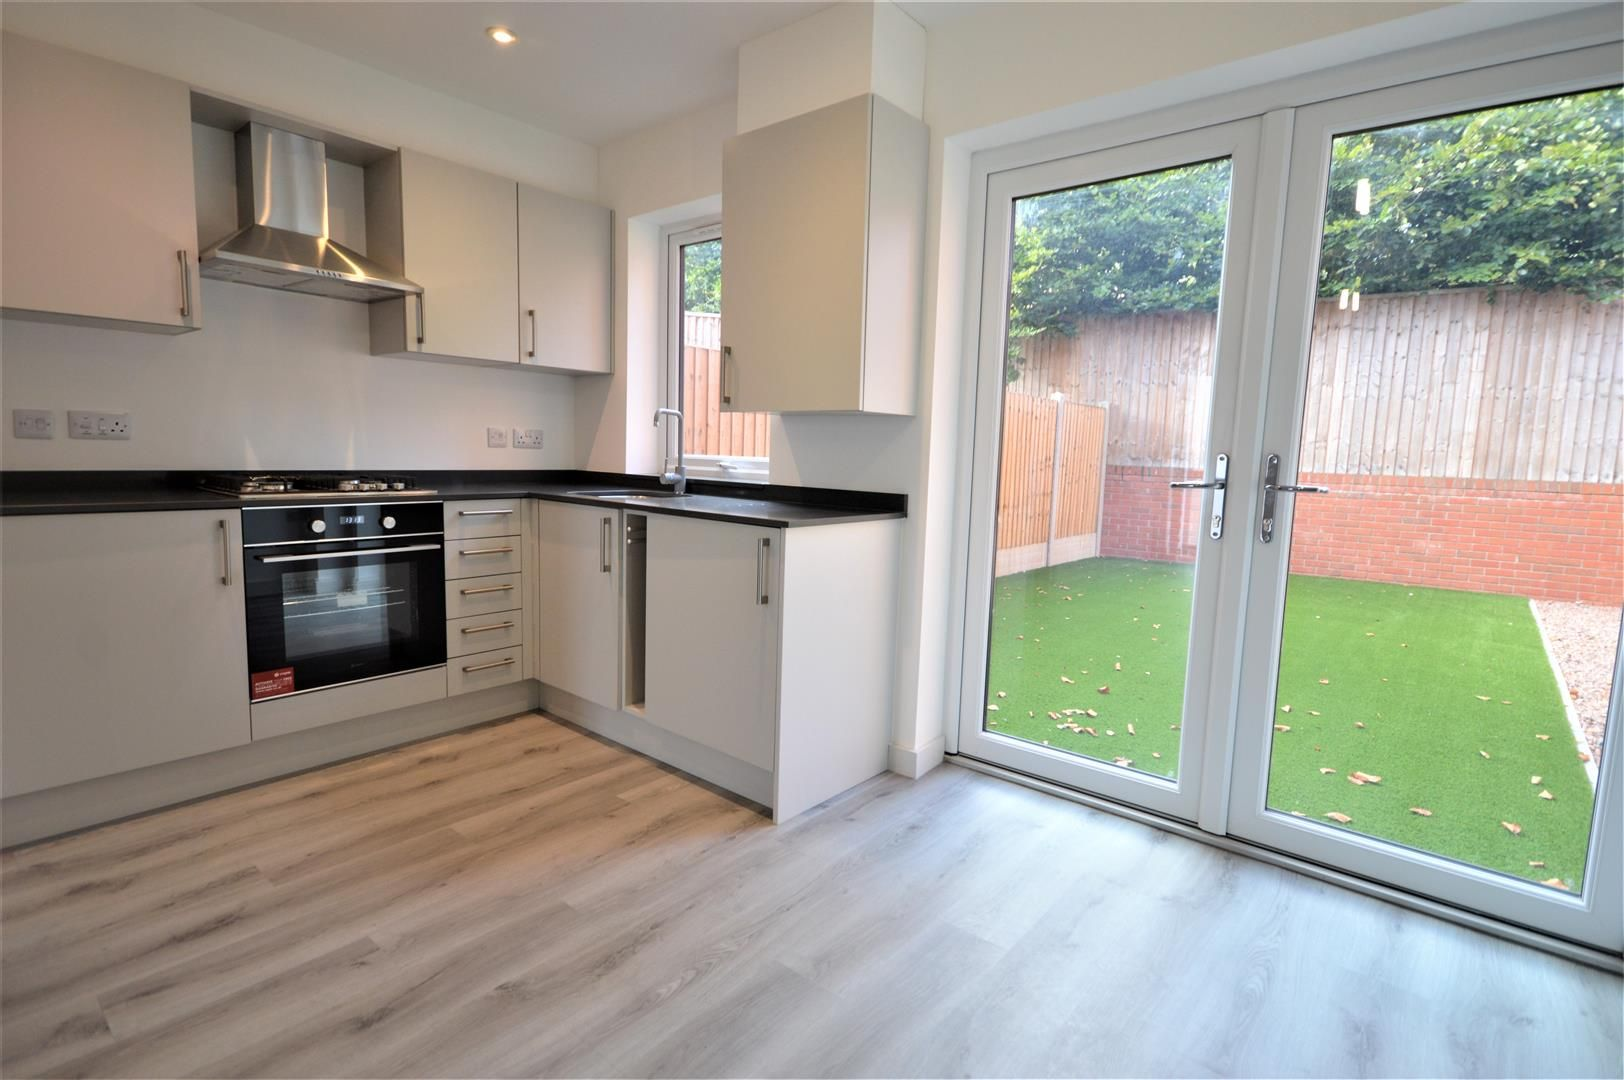 2 bed semi-detached for sale in Leominster  - Property Image 4